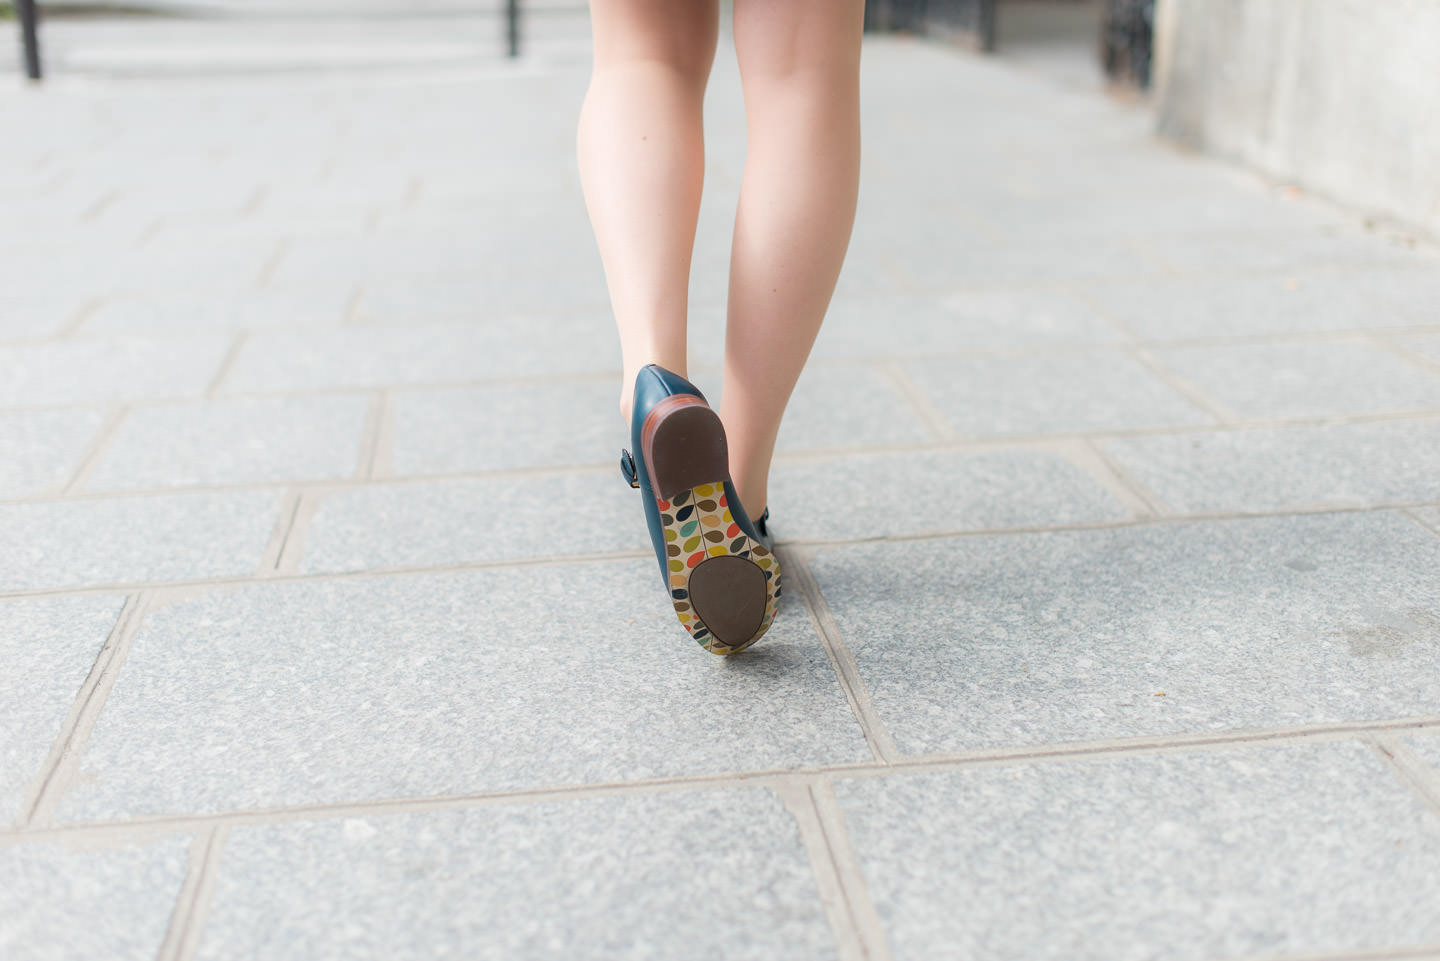 Blog-mode-Mode-And-The-City-looks-collaboration-clarks-orla-kiely (11 sur 11)